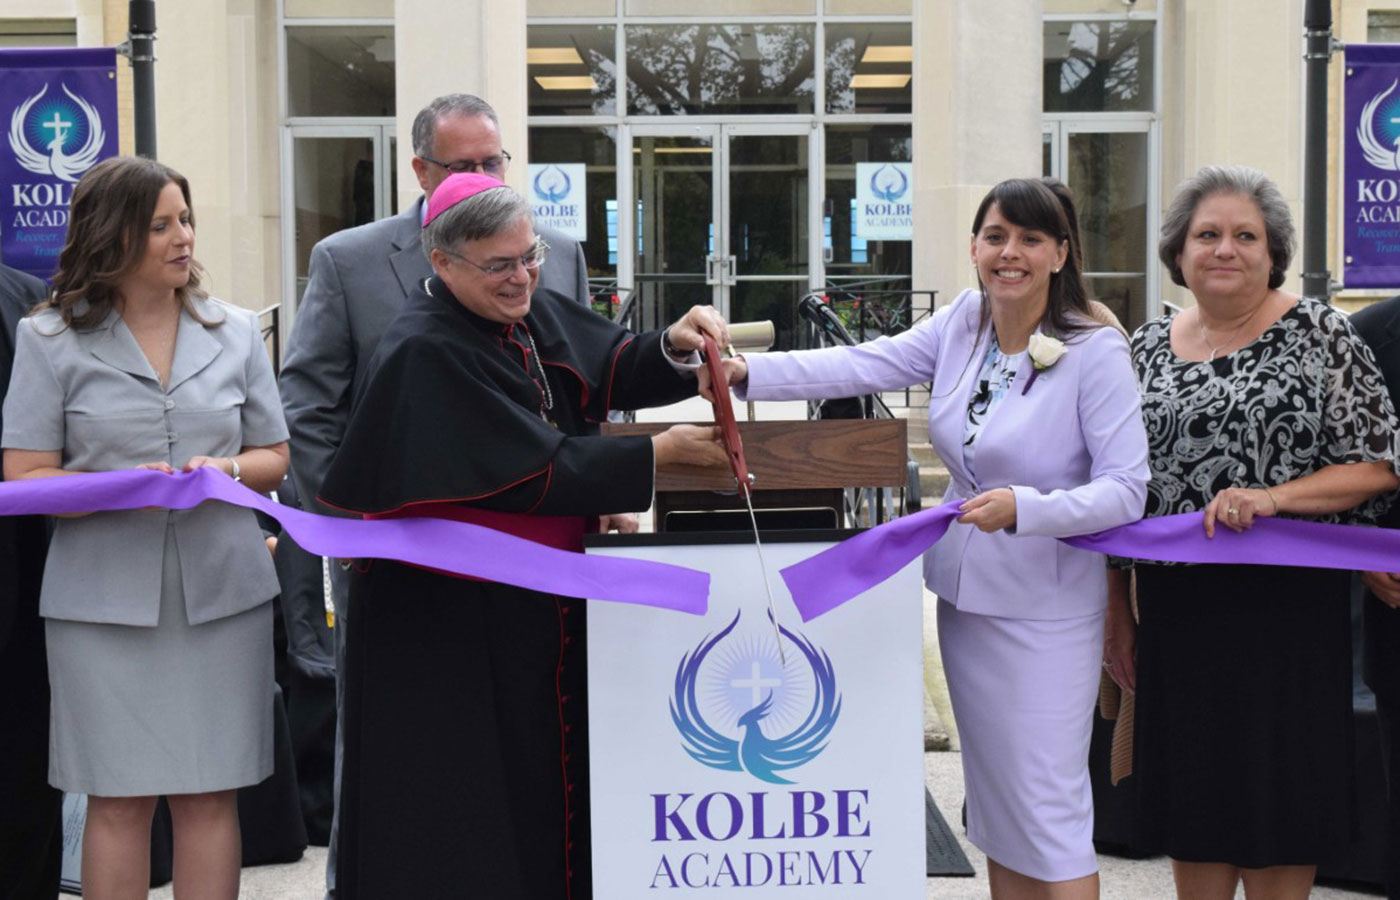 Diocese of Allentown opens Kolbe Academy